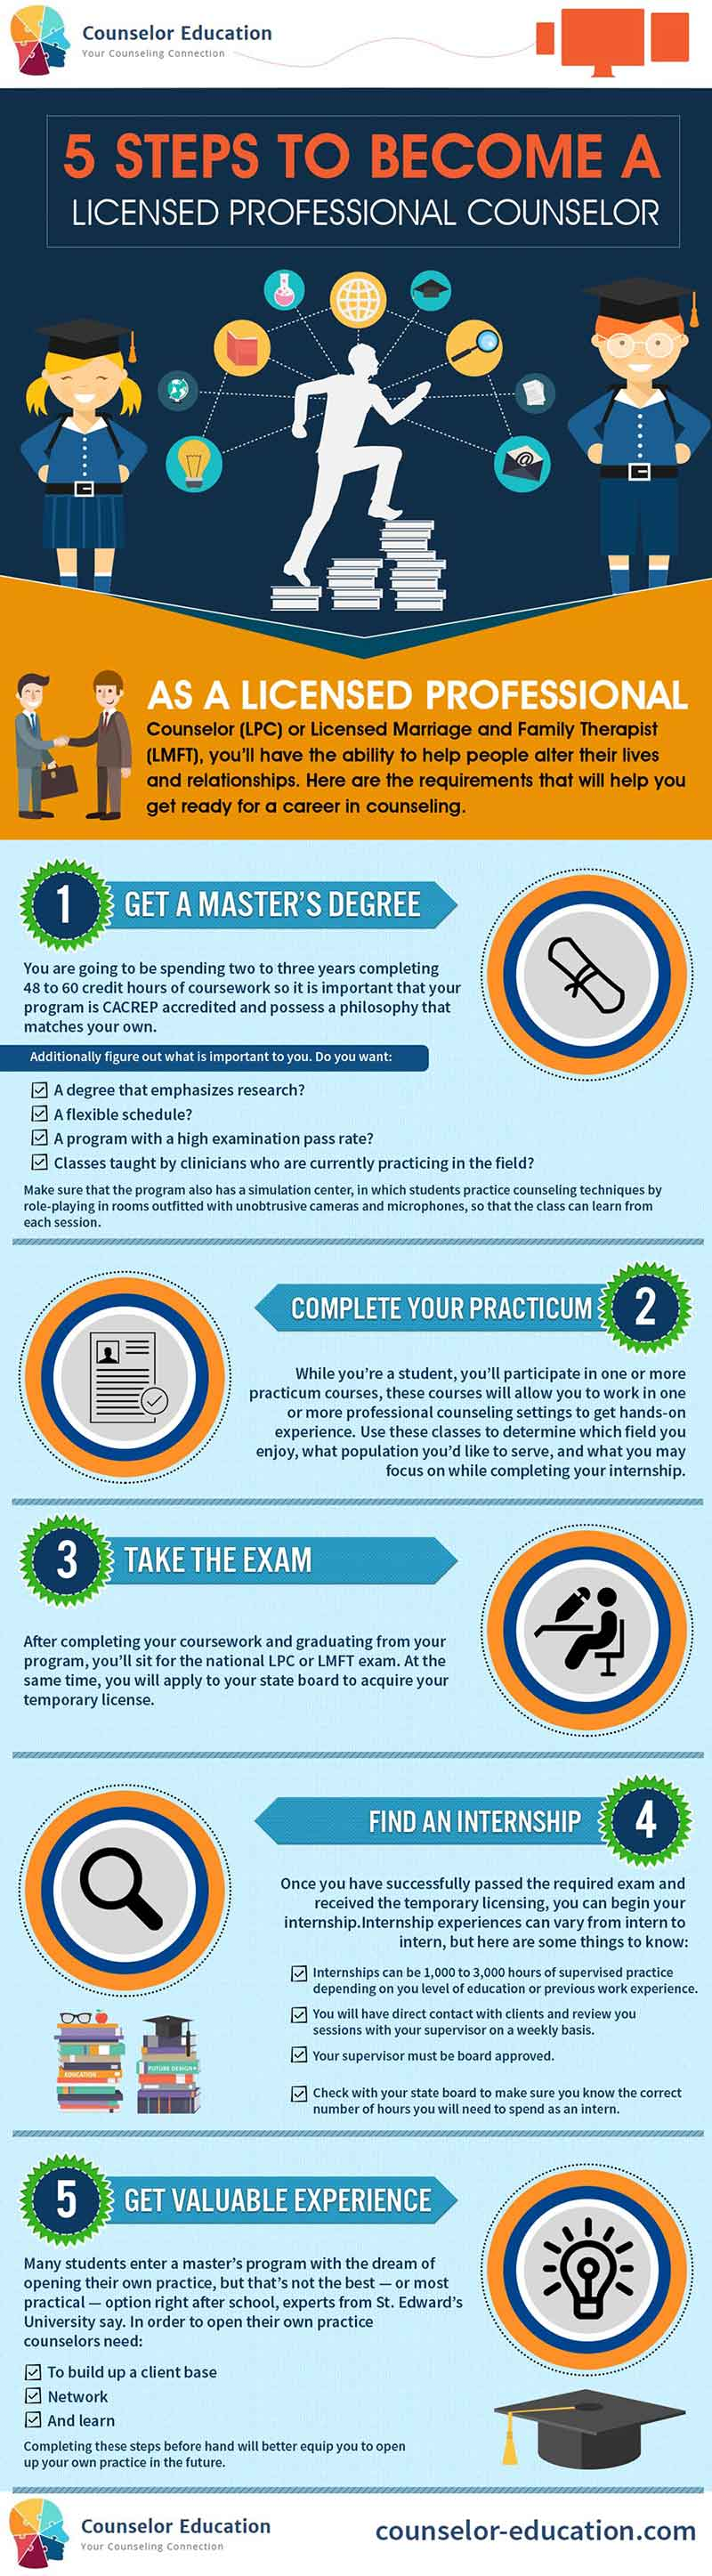 5-steps-to-become-a-licensed-professional-counselor-infographic